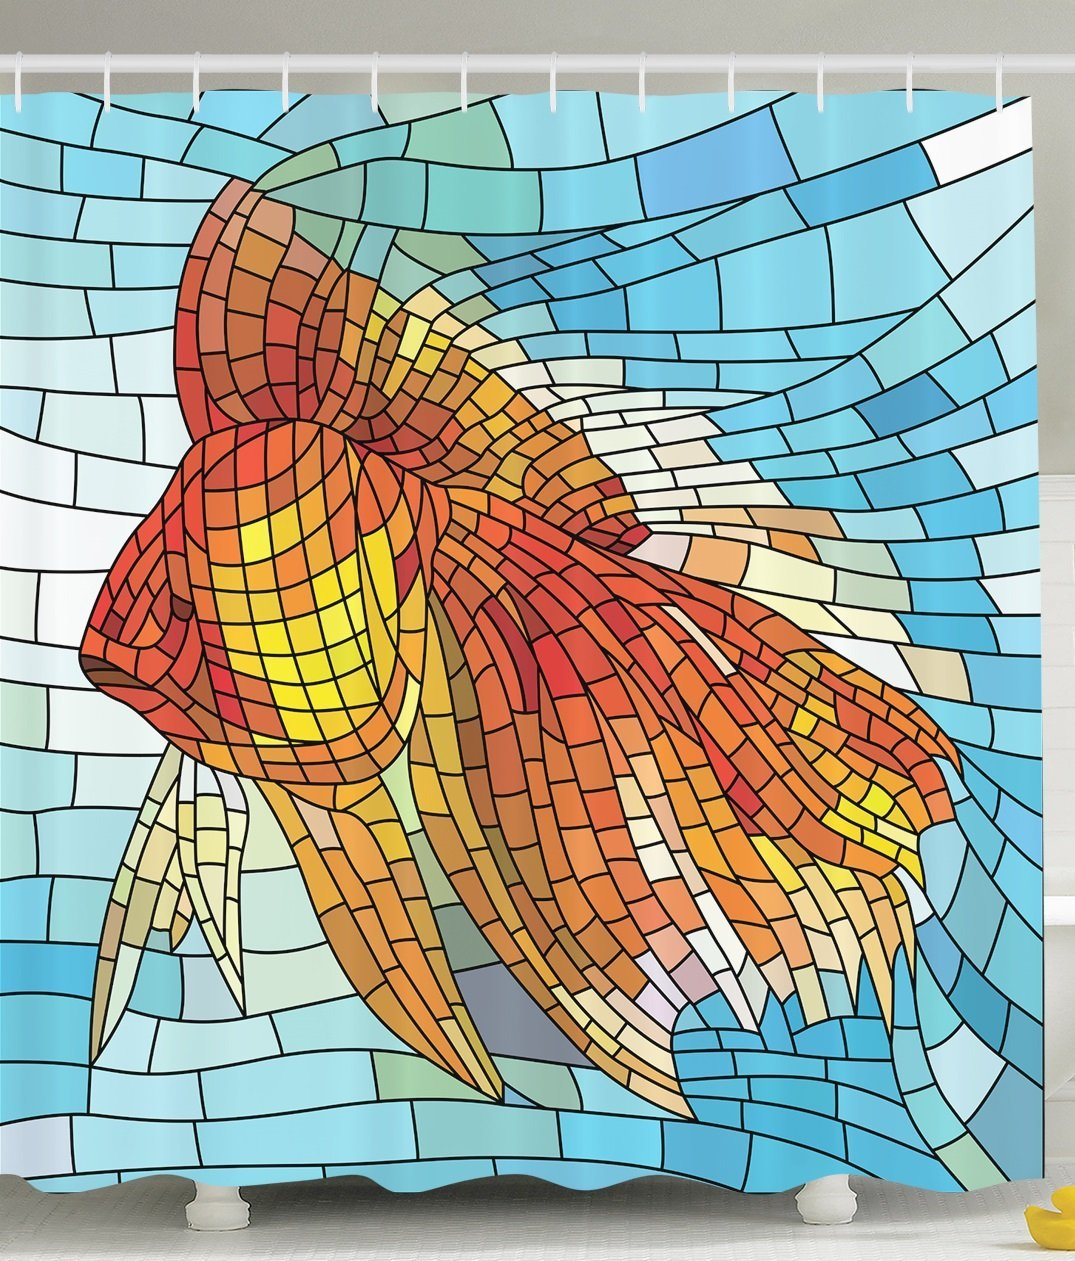 Fish Shower Curtain Personalized Decor Abstract Design for Bathroom Orange Tropical Fish Style with Mosaic Art Pattern Stained Glass Window and Gold Fish Underwater Blue Ocean Decorations Print